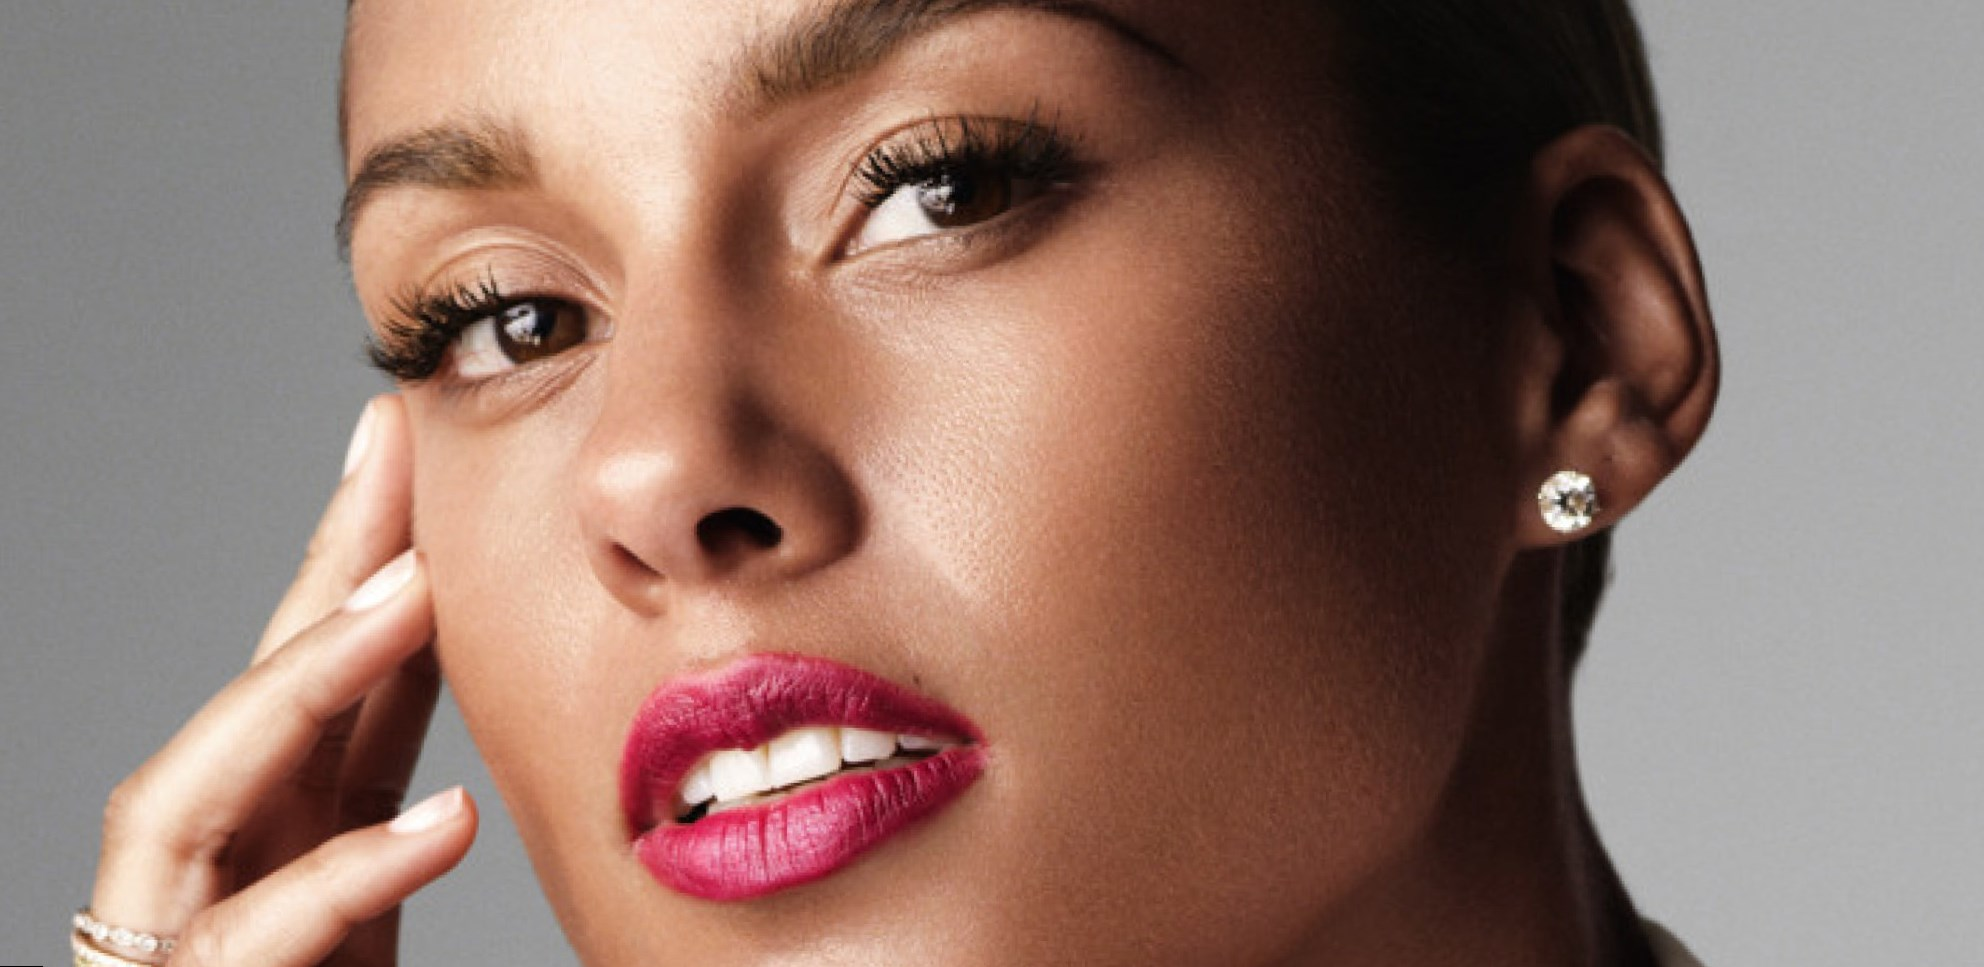 alicia keys  u0026 39 s body measurements  height  weight  age